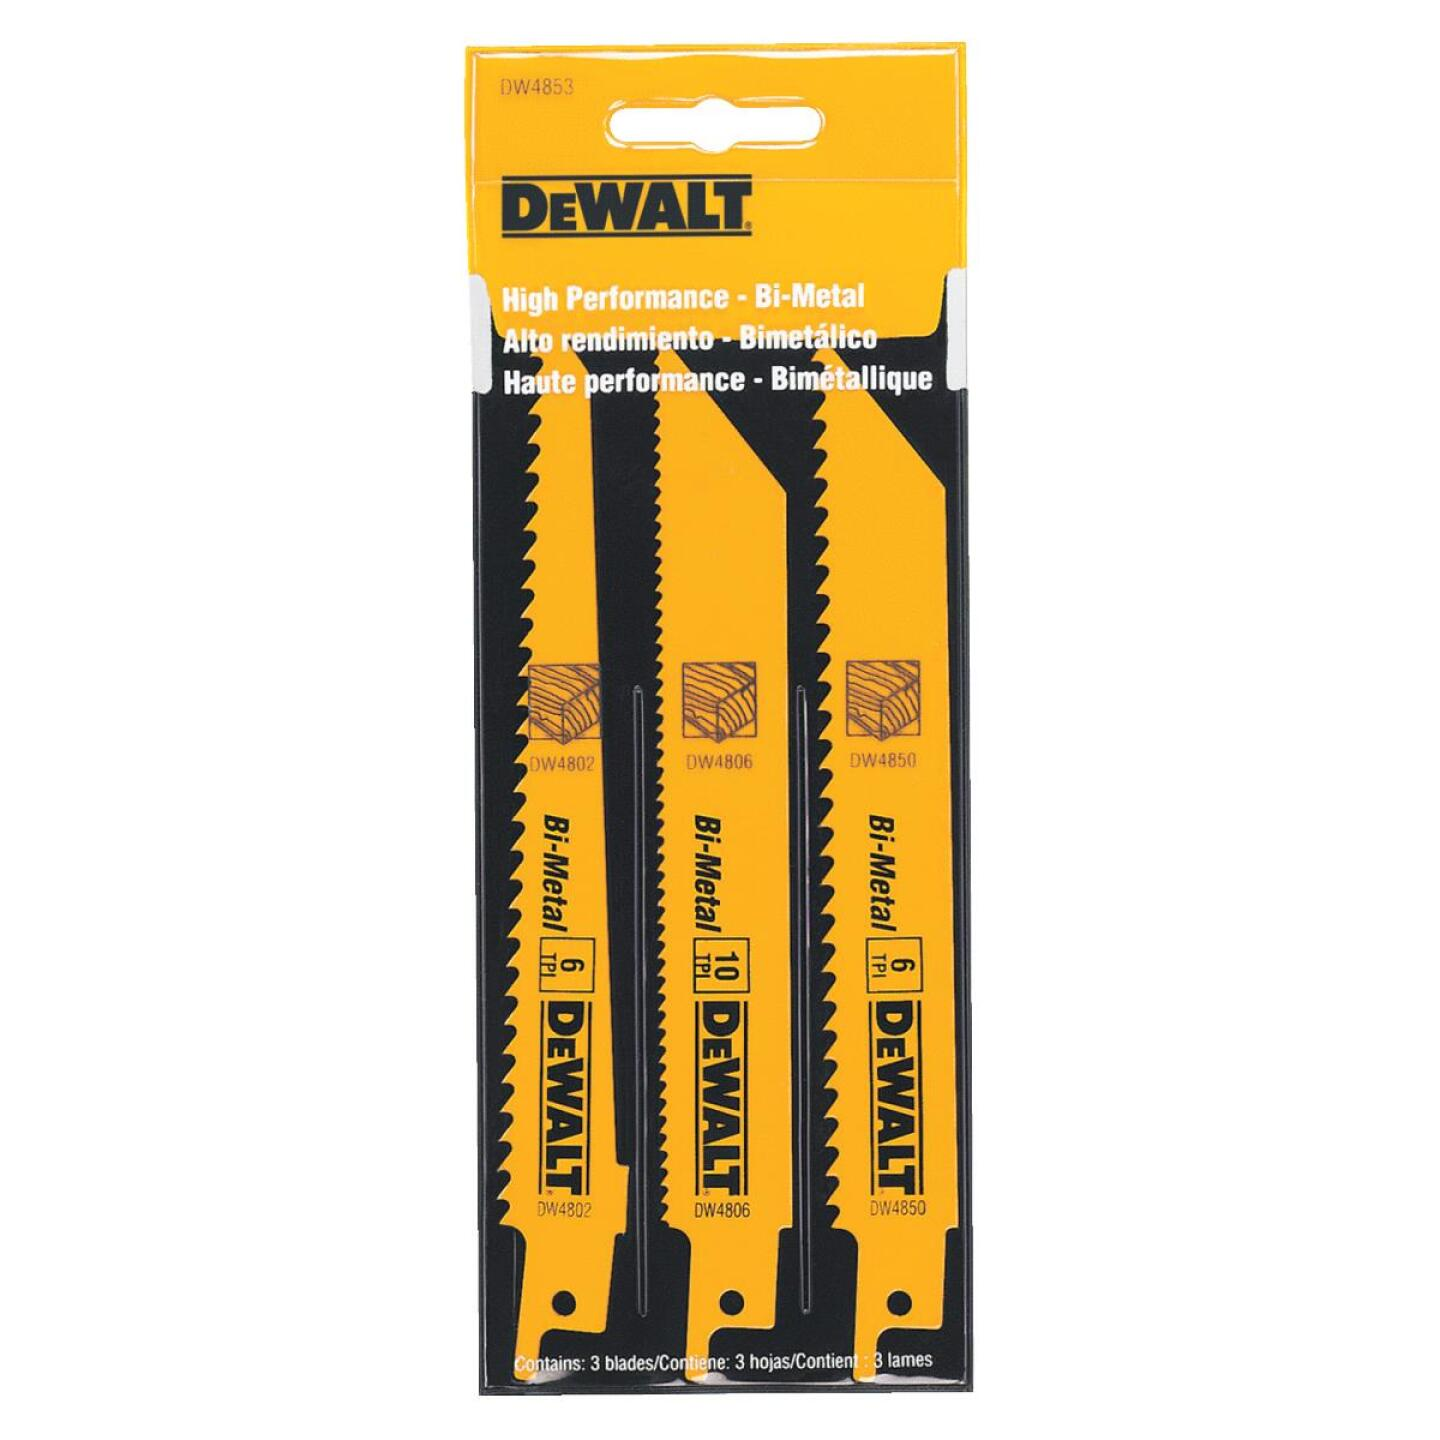 DeWalt 3-Piece Reciprocating Saw Blade Set Image 2